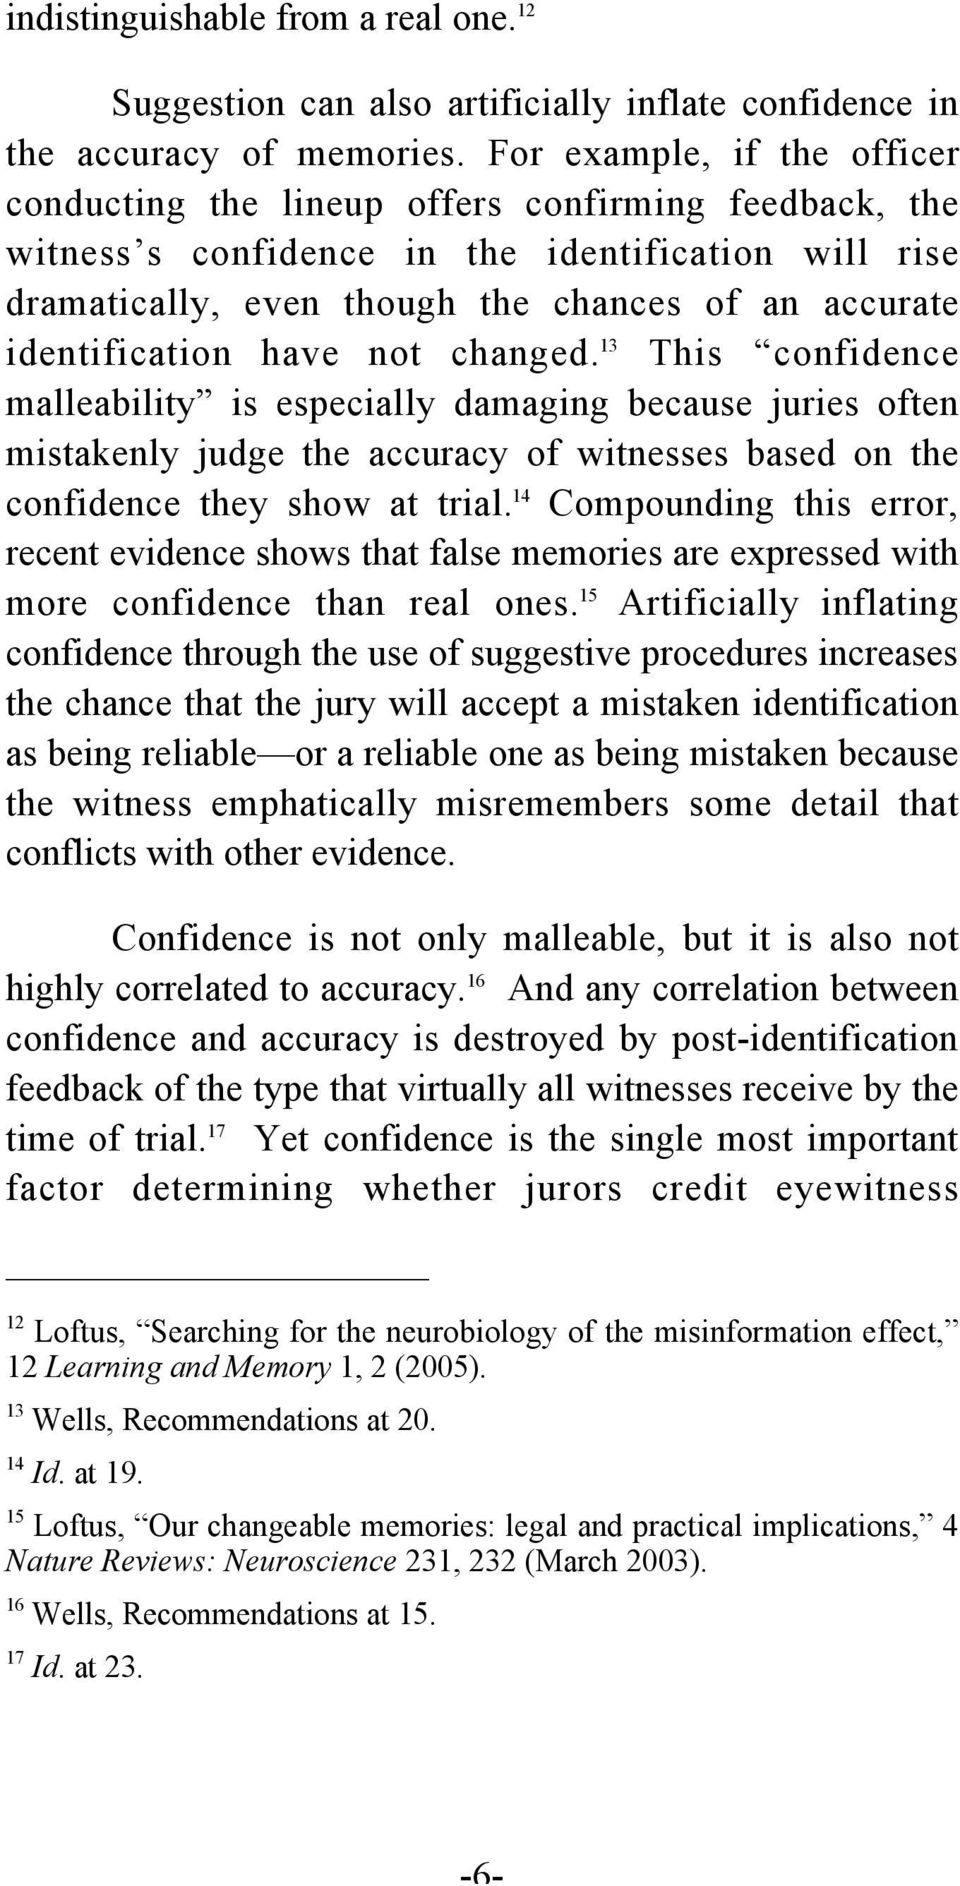 identification have not changed. 13 This confidence malleability is especially damaging because juries often mistakenly judge the accuracy of witnesses based on the confidence they show at trial.